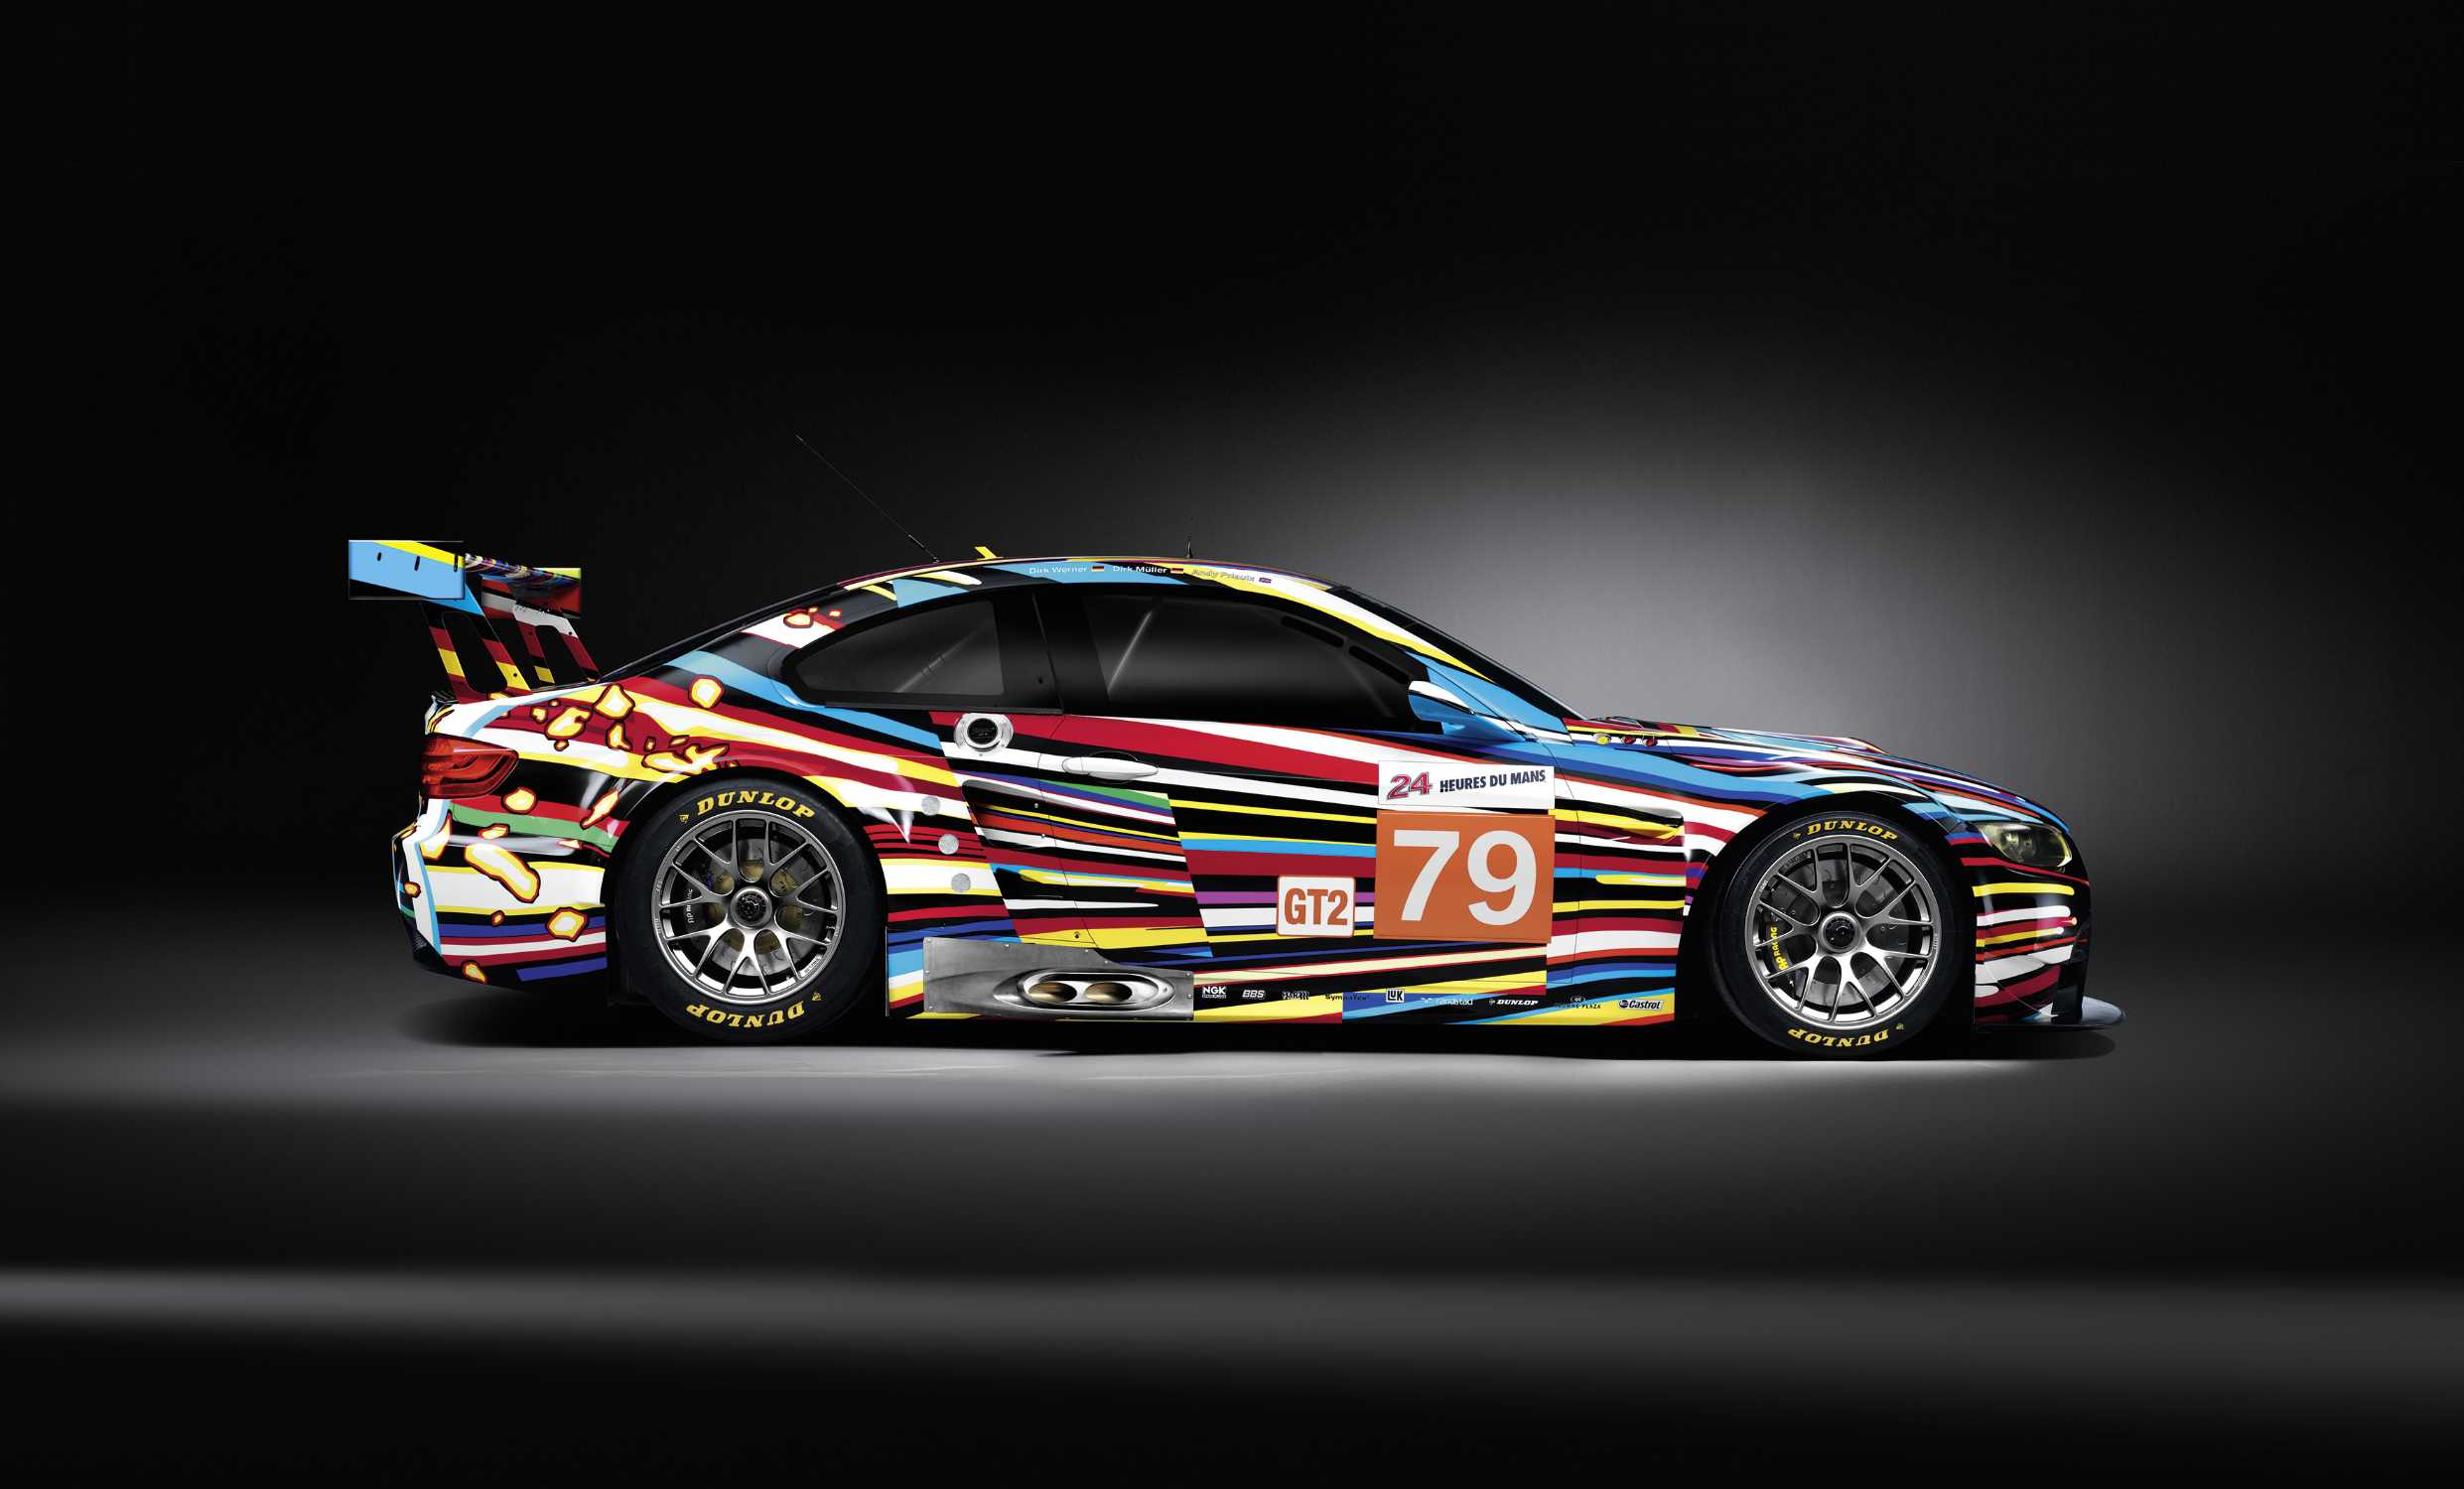 Art Drives BMW to Creative Expression